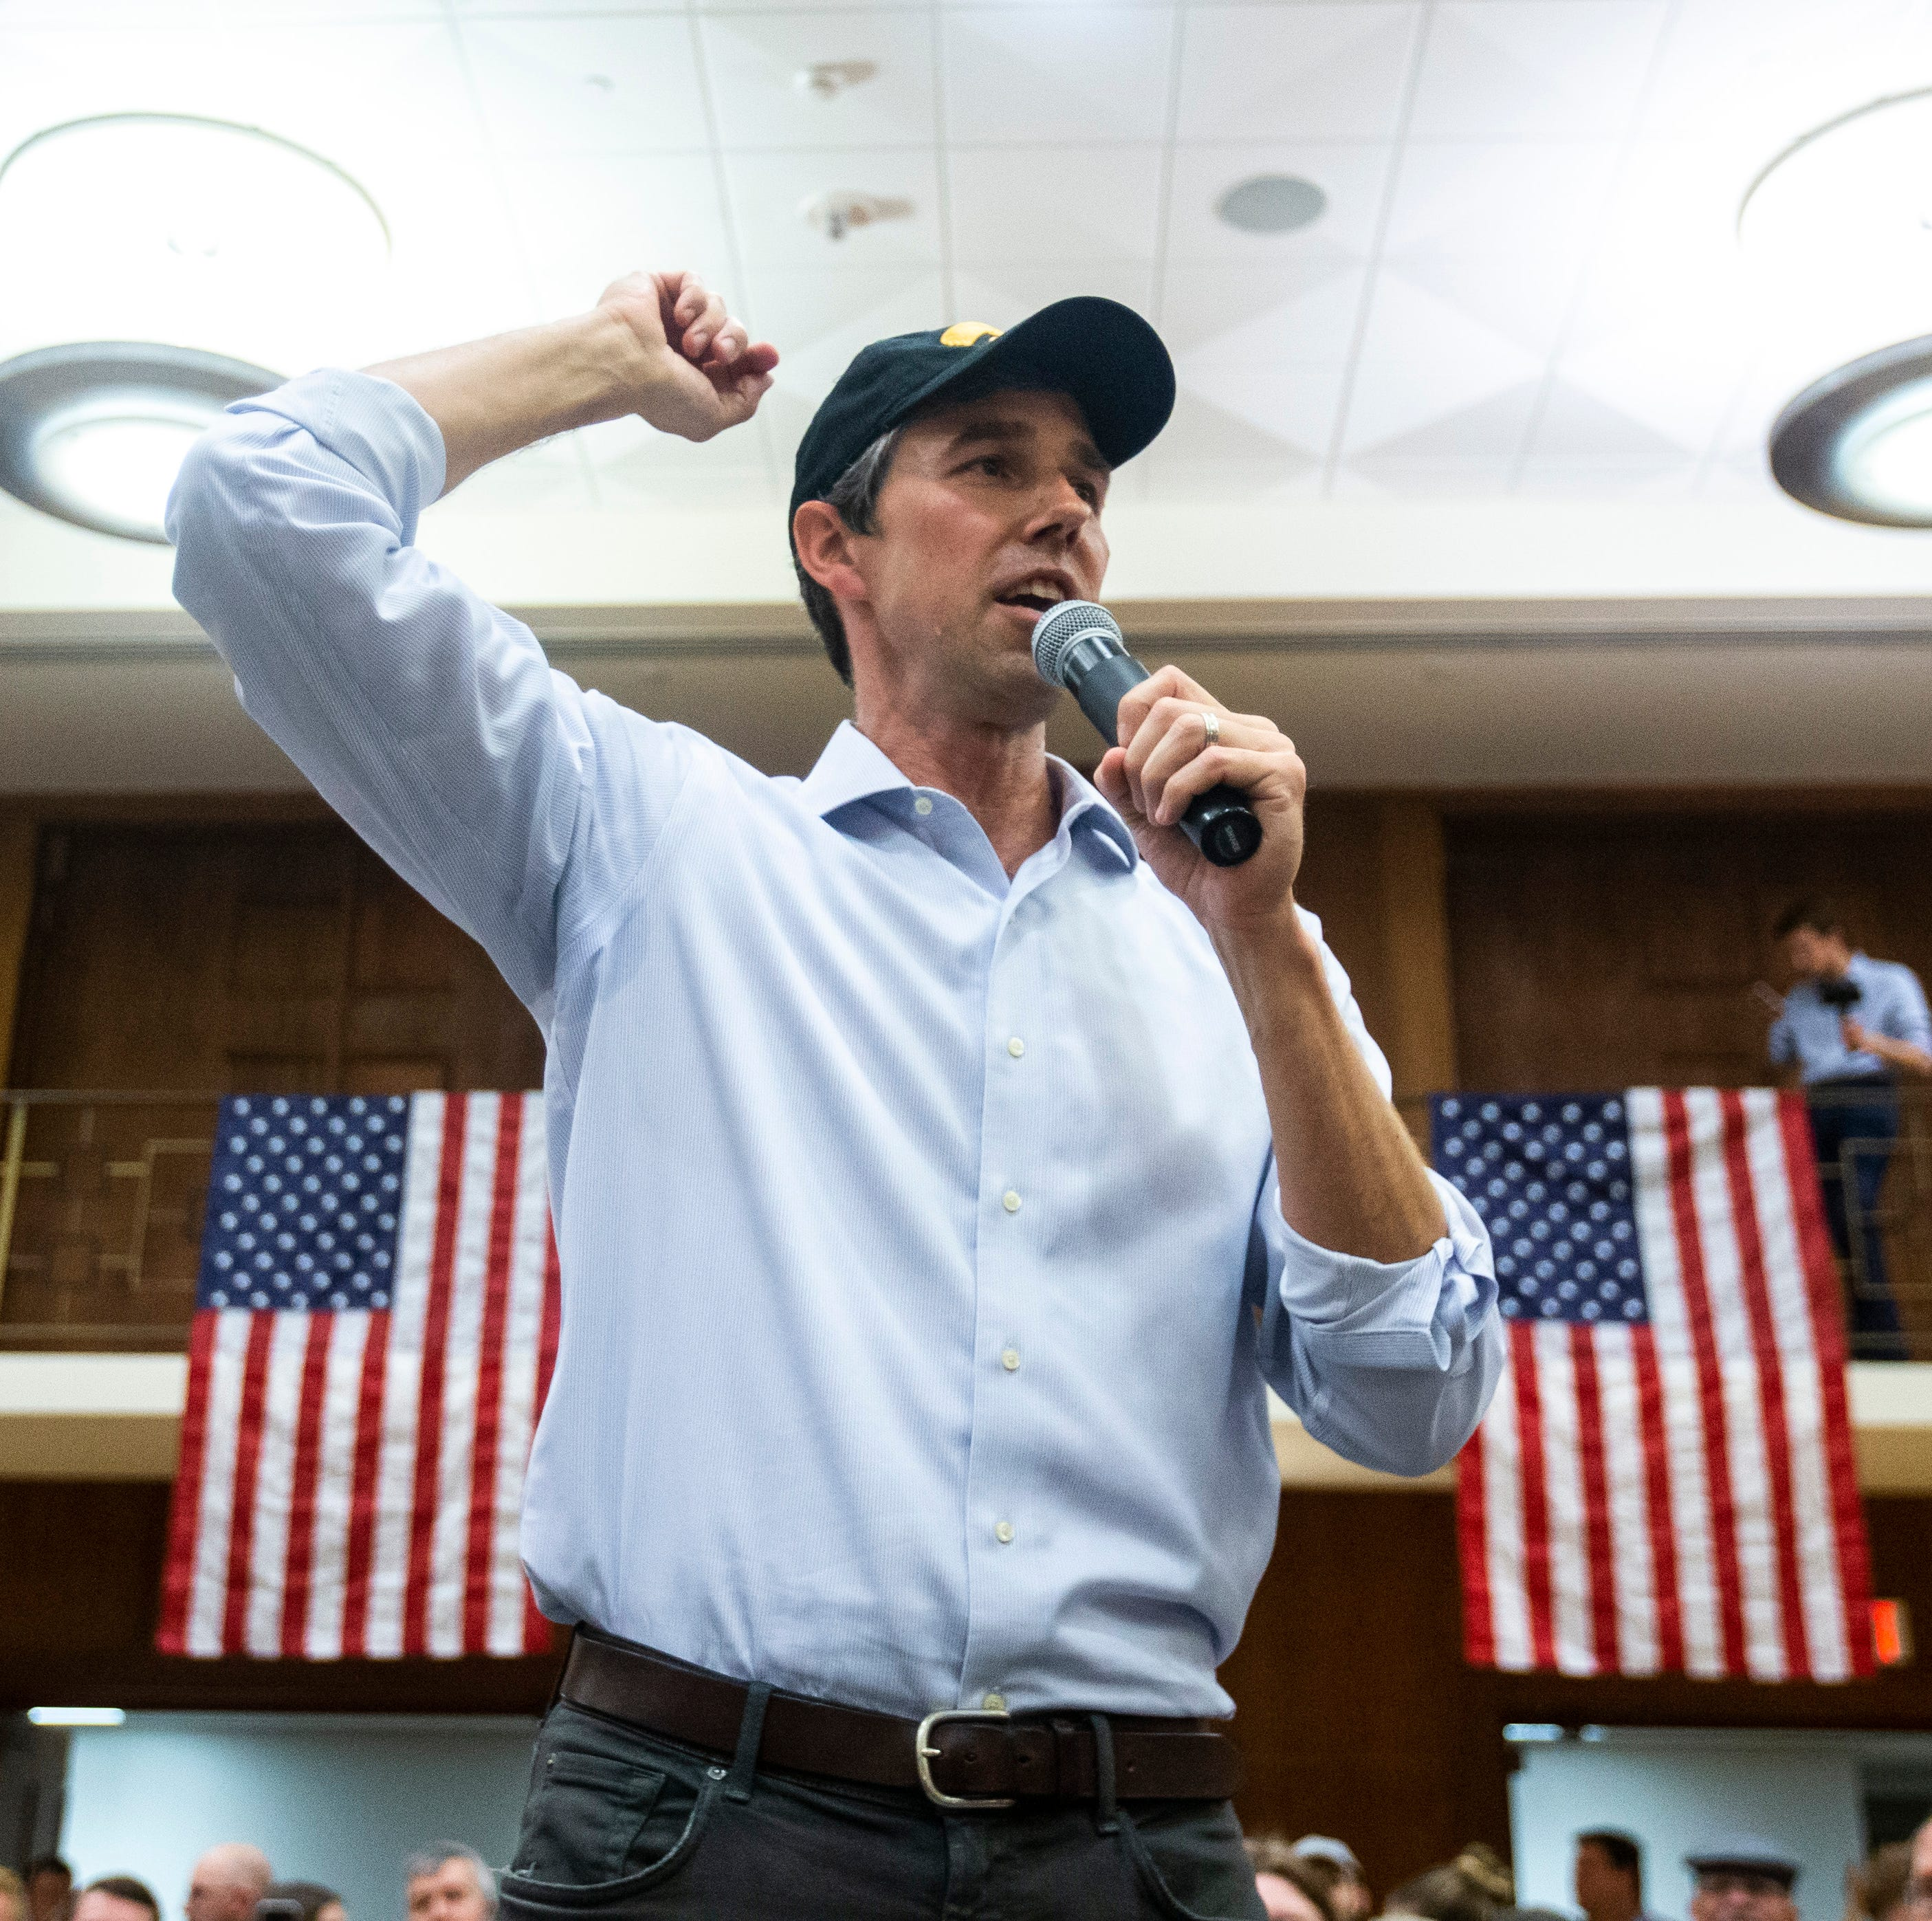 Beto O'Rourke expresses frustration at 'lack of substance' critique in Iowa City